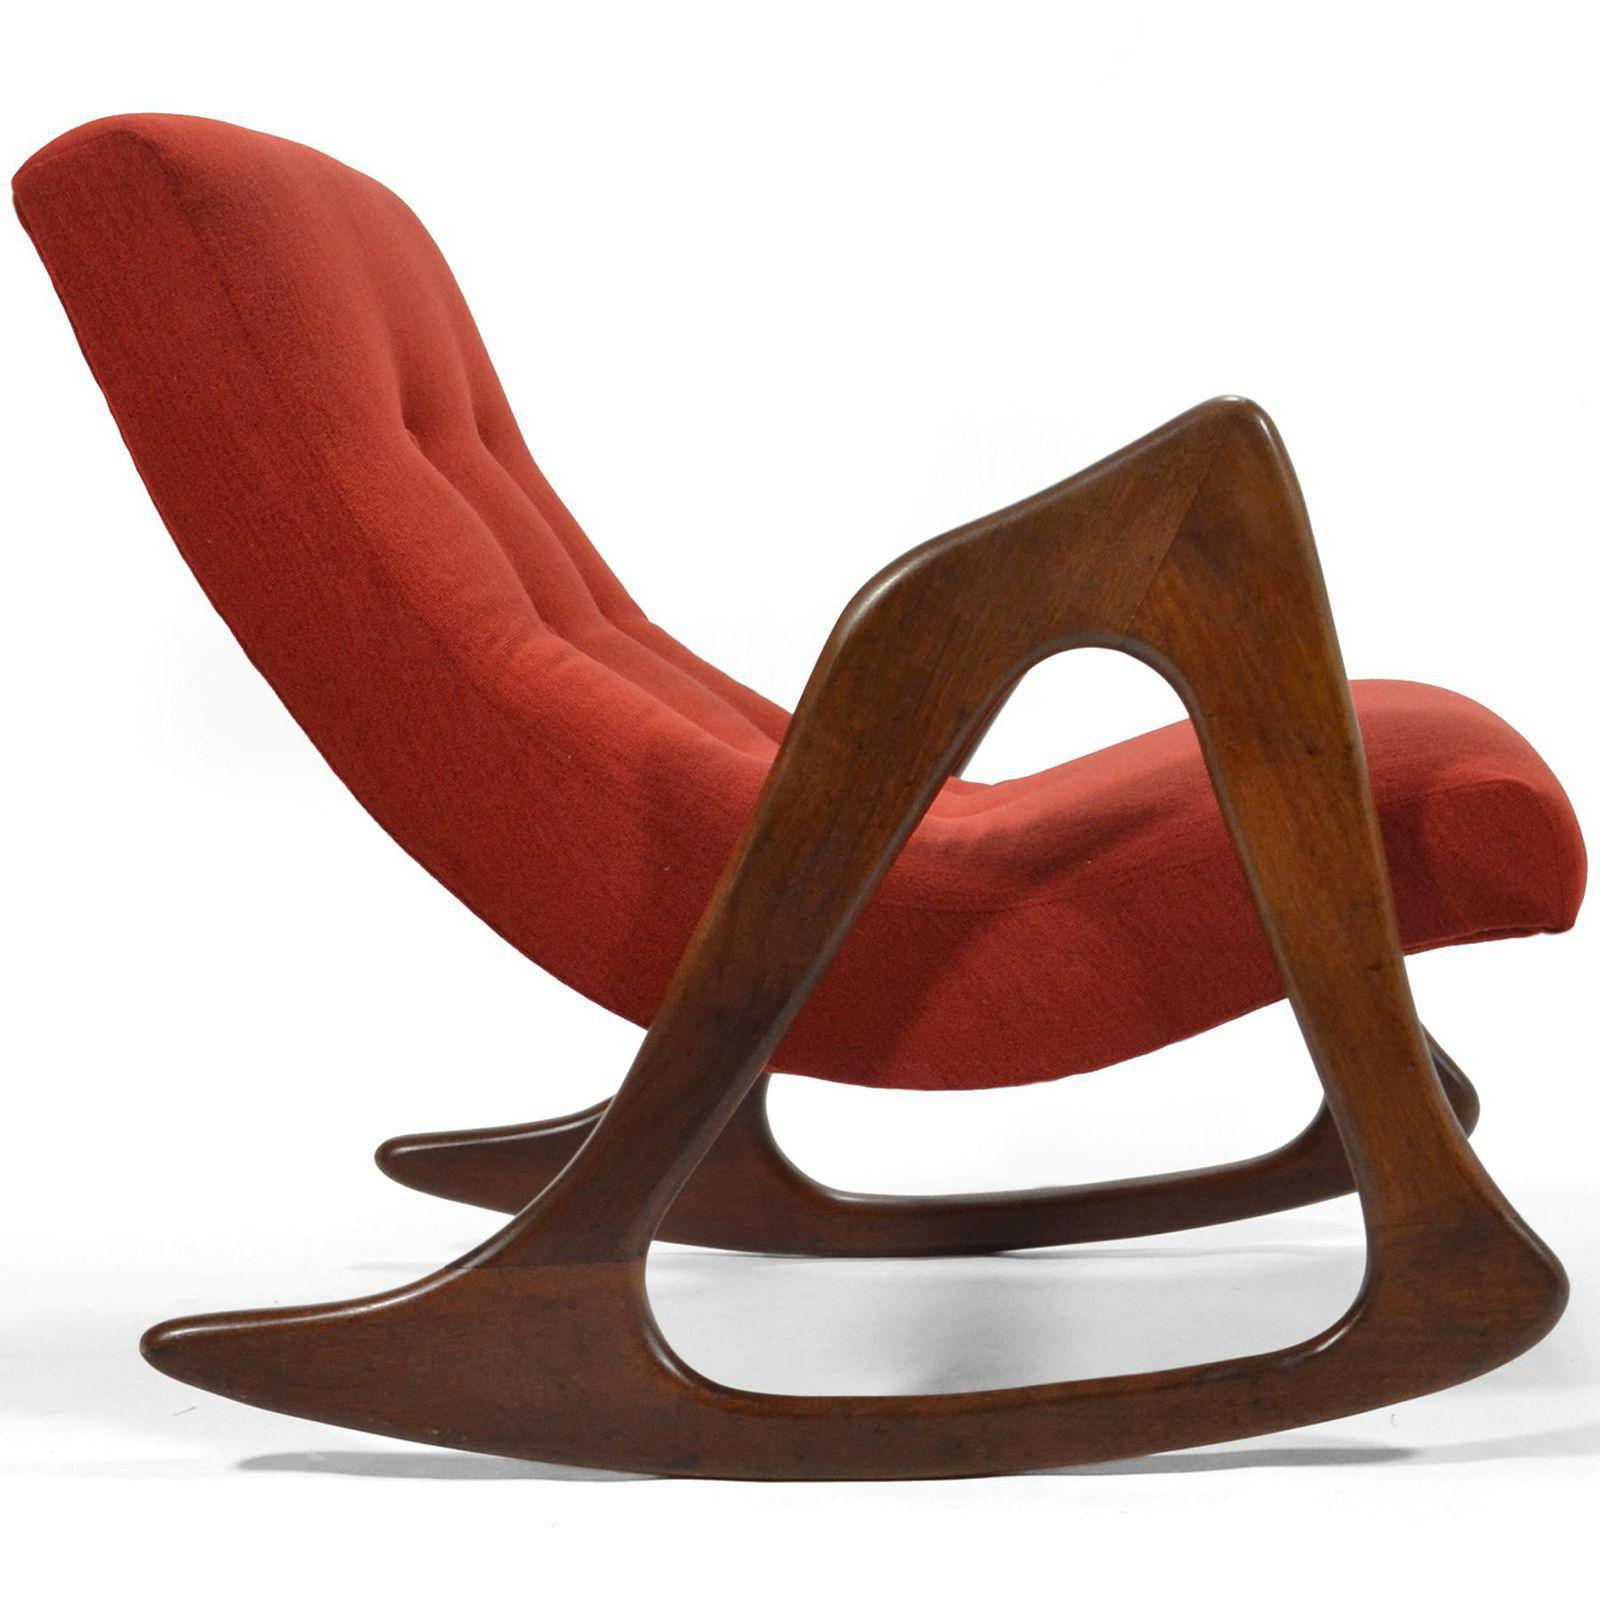 Adrian Pearsall Rocking Chair By Craft Associates   Image 8 Of 8